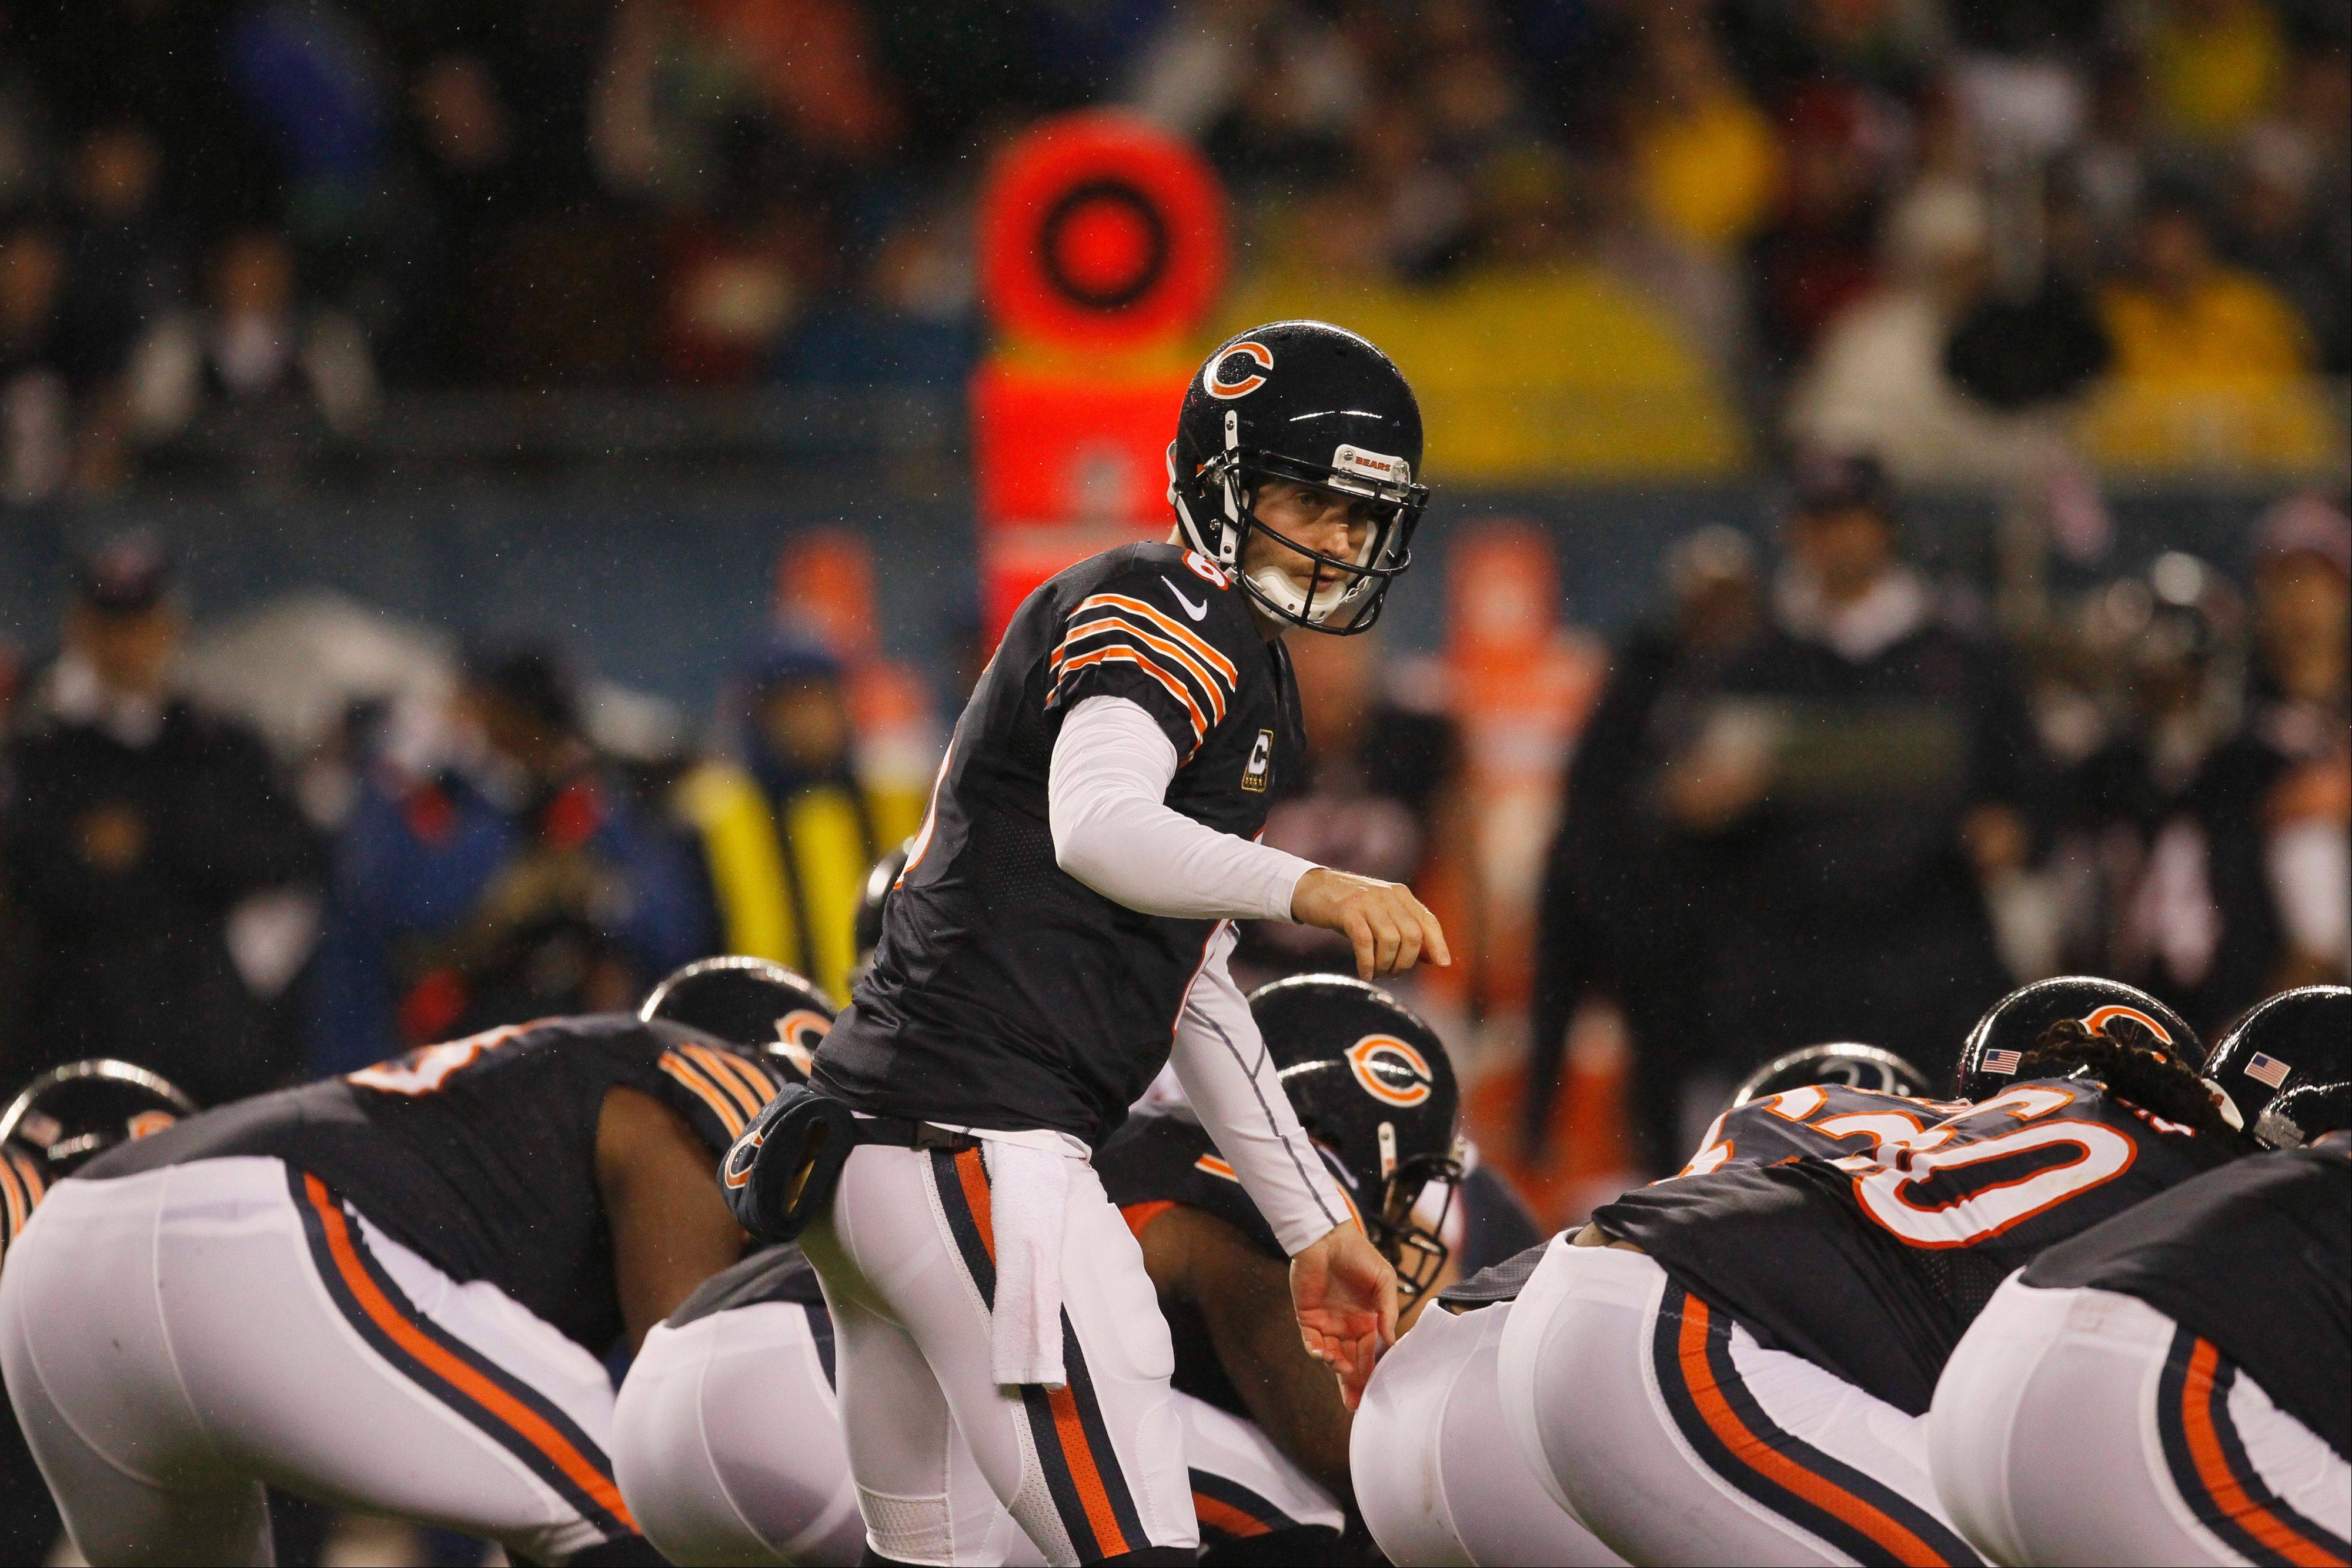 Whether its Jay Cutler under center against the Vikings on Sunday or not, the Bears offensive line has to find a way to protect the quarterback.